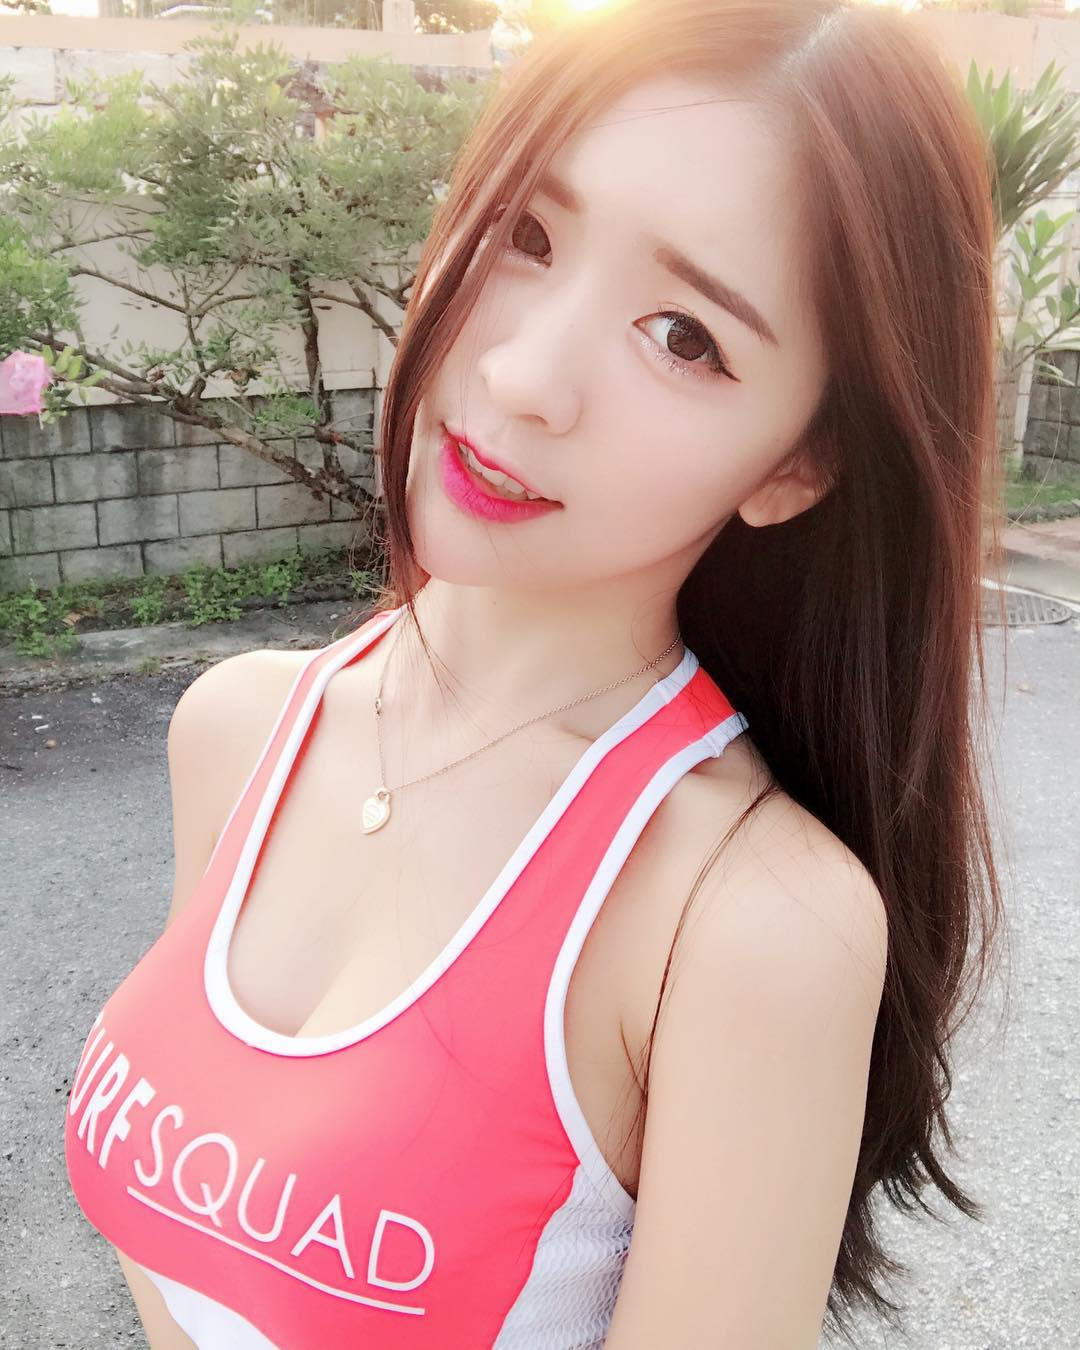 pinetop asian singles Meet asian singles in pinedale interested in meeting new people to date on zoosk over 30 million single people are using zoosk to find people to date.